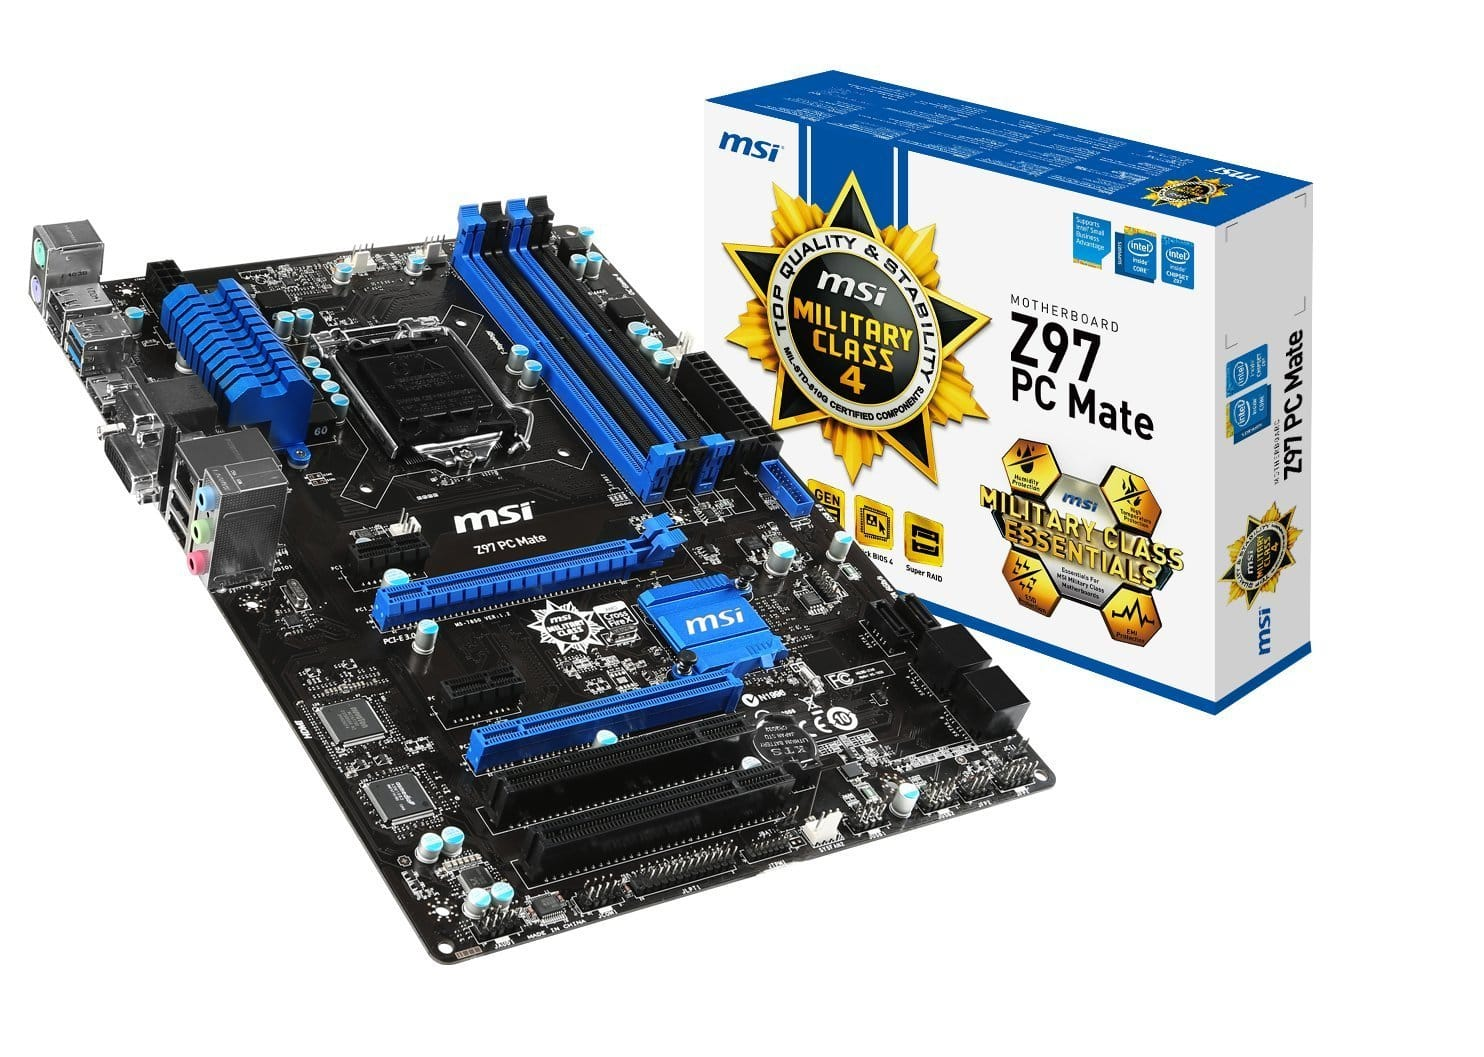 Intel Pentium G3258 CPU + MSI Z97 ATX Motherboard  $90 after $10 Rebate + Free Shipping